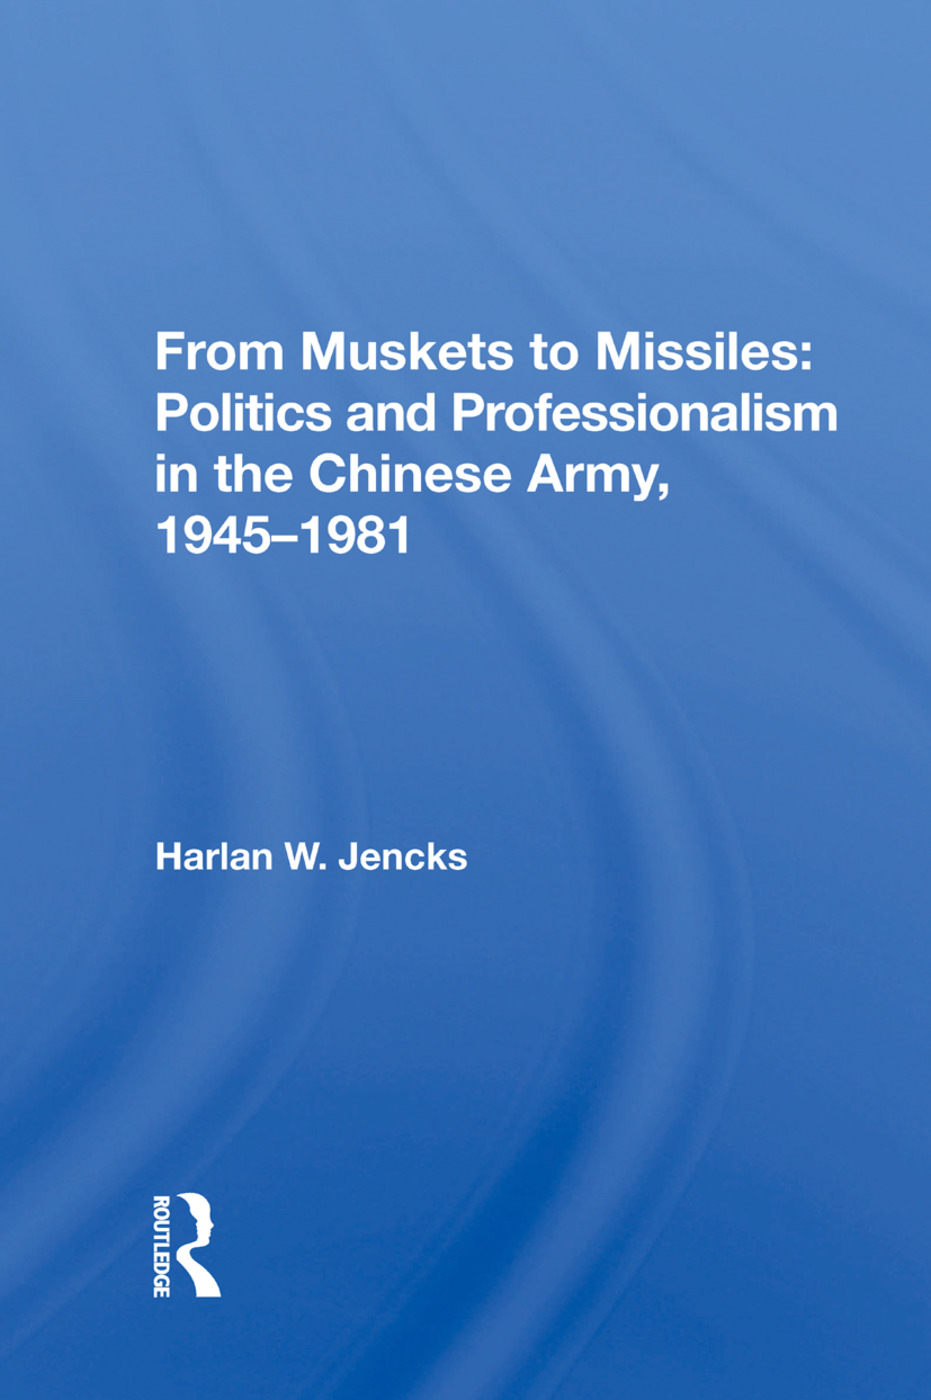 From Muskets to Missiles: Politics and Professionalism in the Chinese Army, 1945-1981